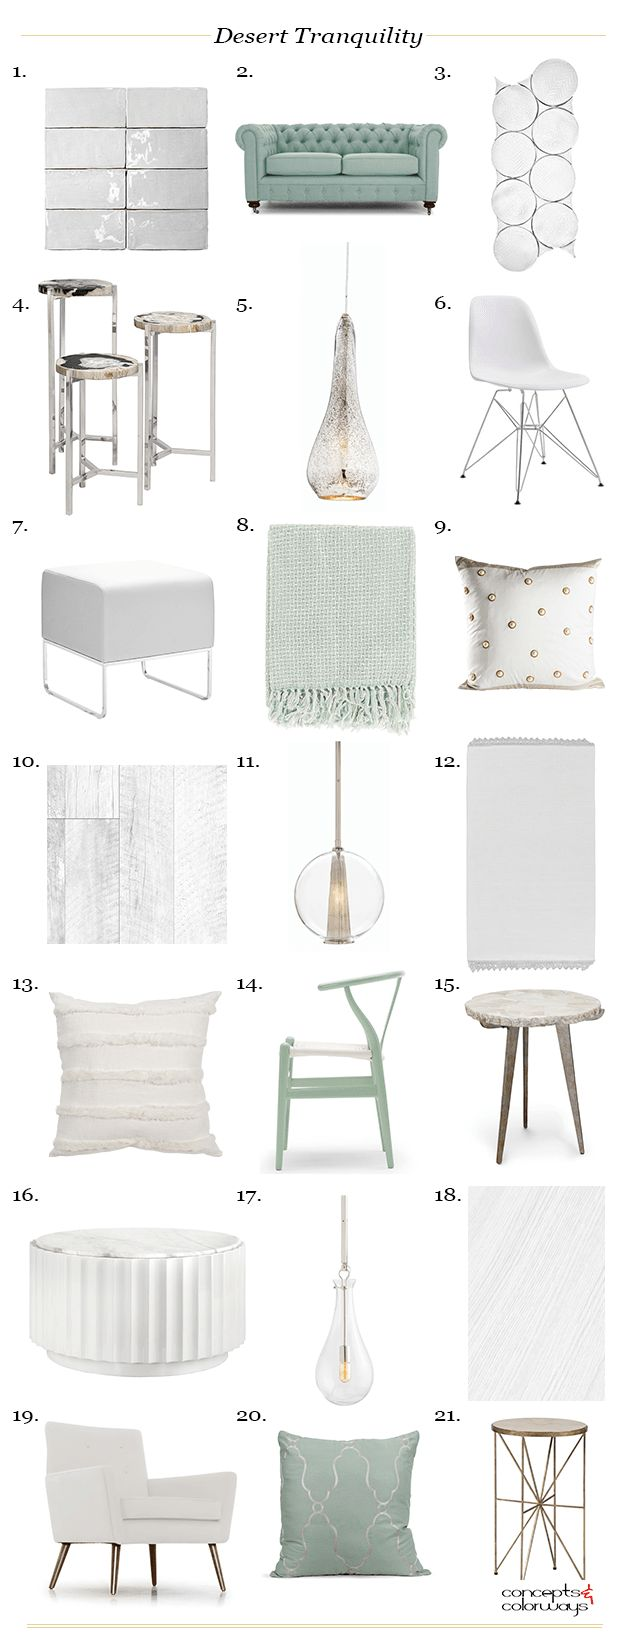 desert tranquility interior product roundup, interior styling ideas, nature inspired interior design, eucalyptus green, sherwin williams kind green, seafoam green, aloe green, pale gray, taupe